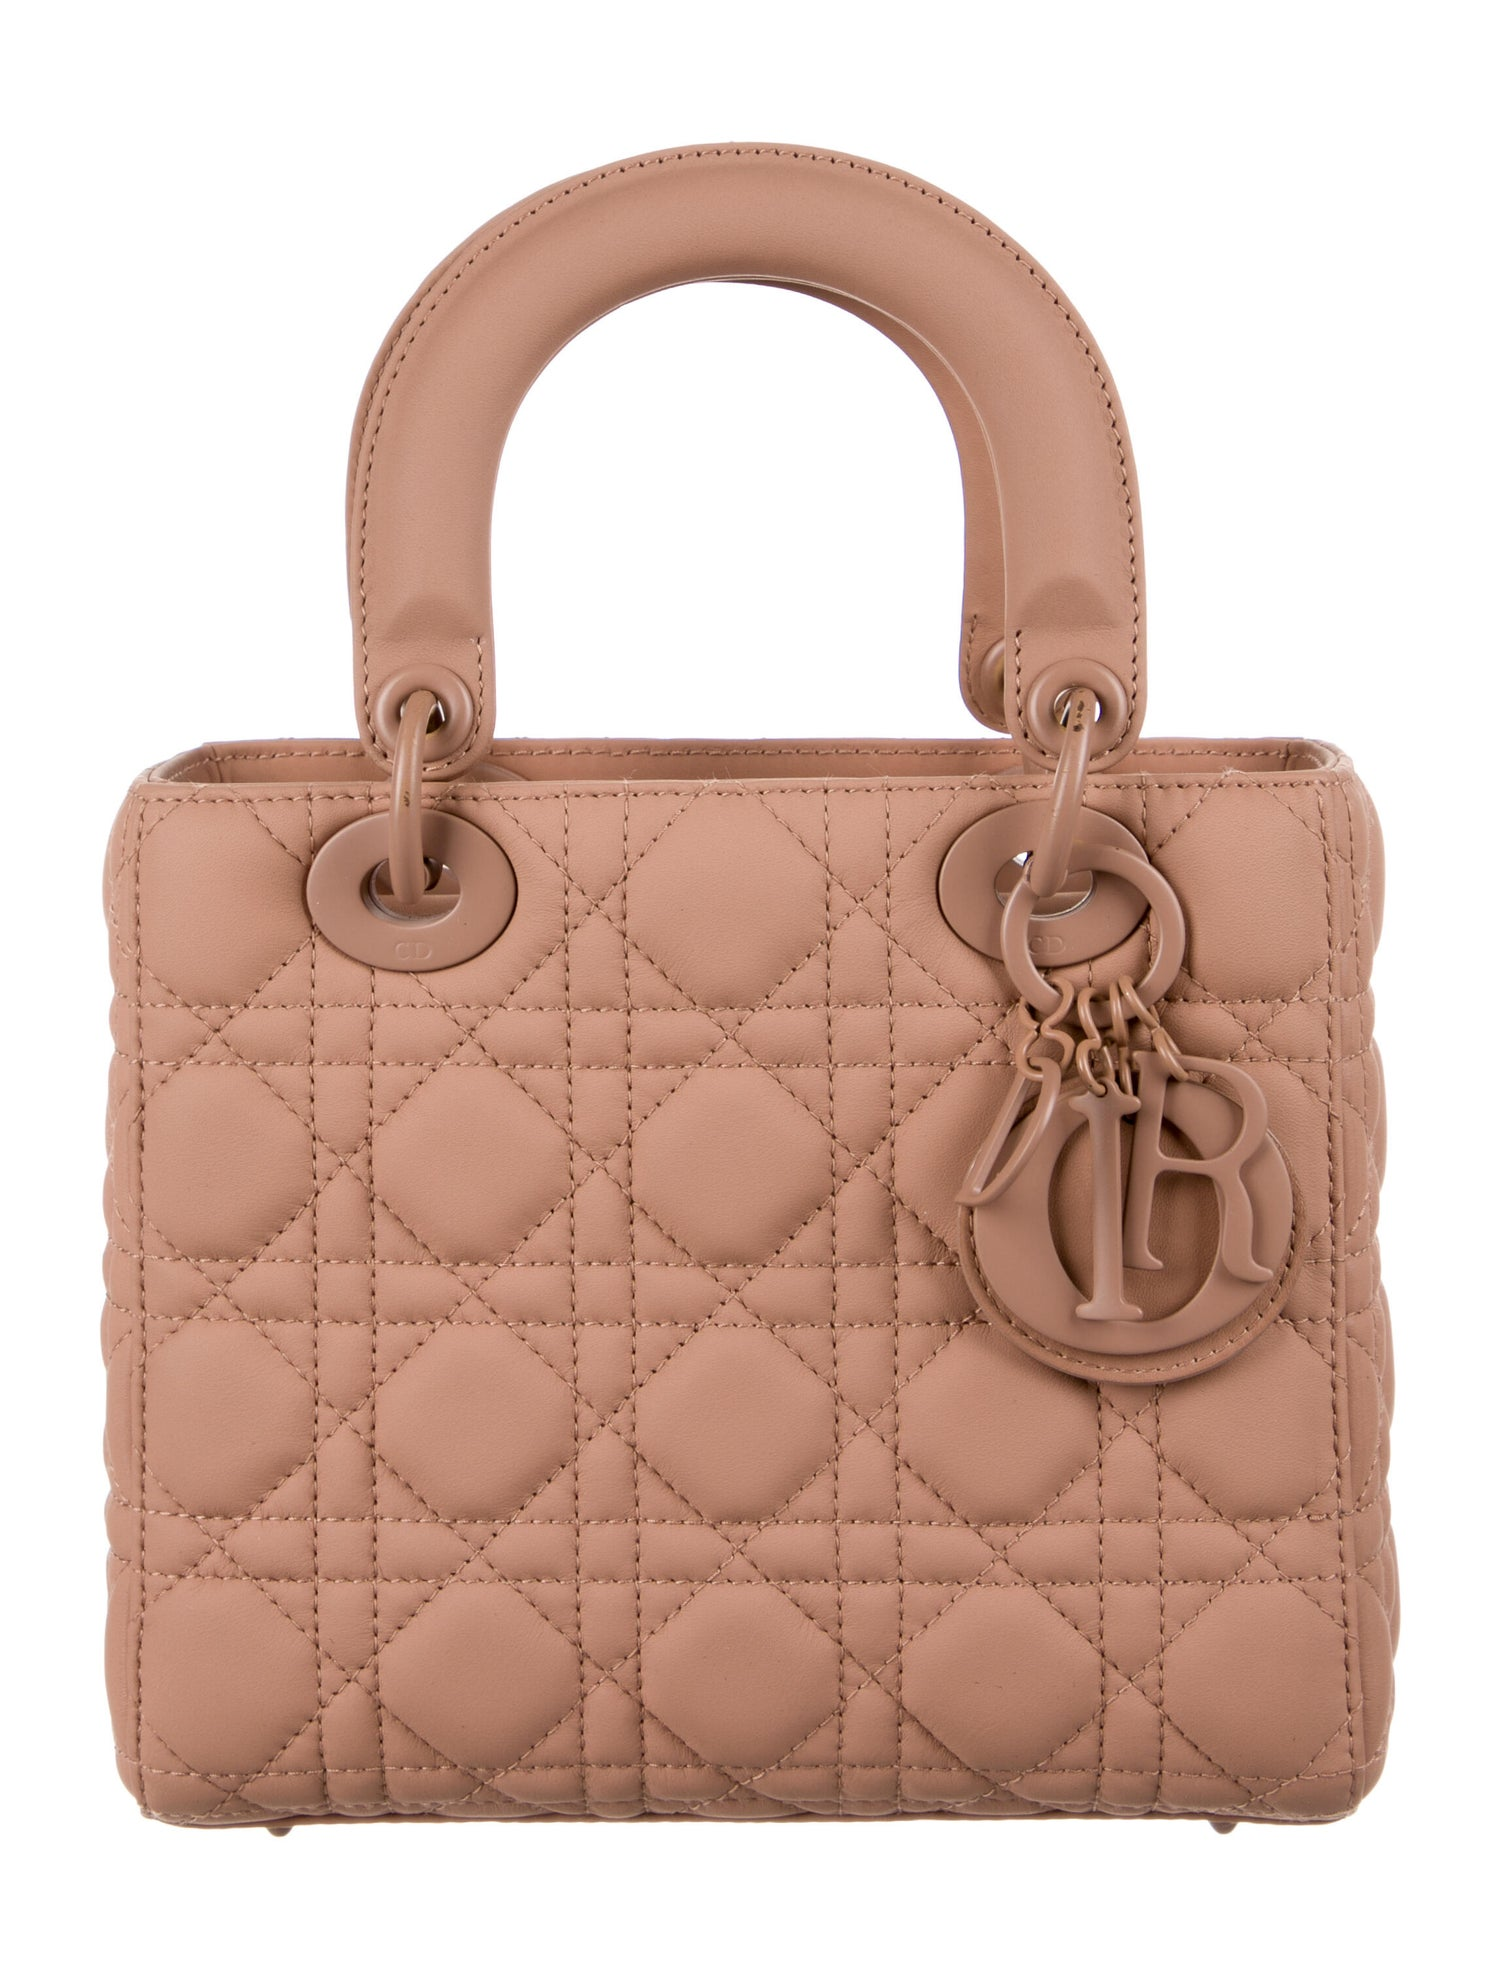 Ultramatte Lady Dior My ABCDior Bag by CHRISTIAN DIOR, available on therealreal.com for $4400 Olivia Culpo Bags Exact Product